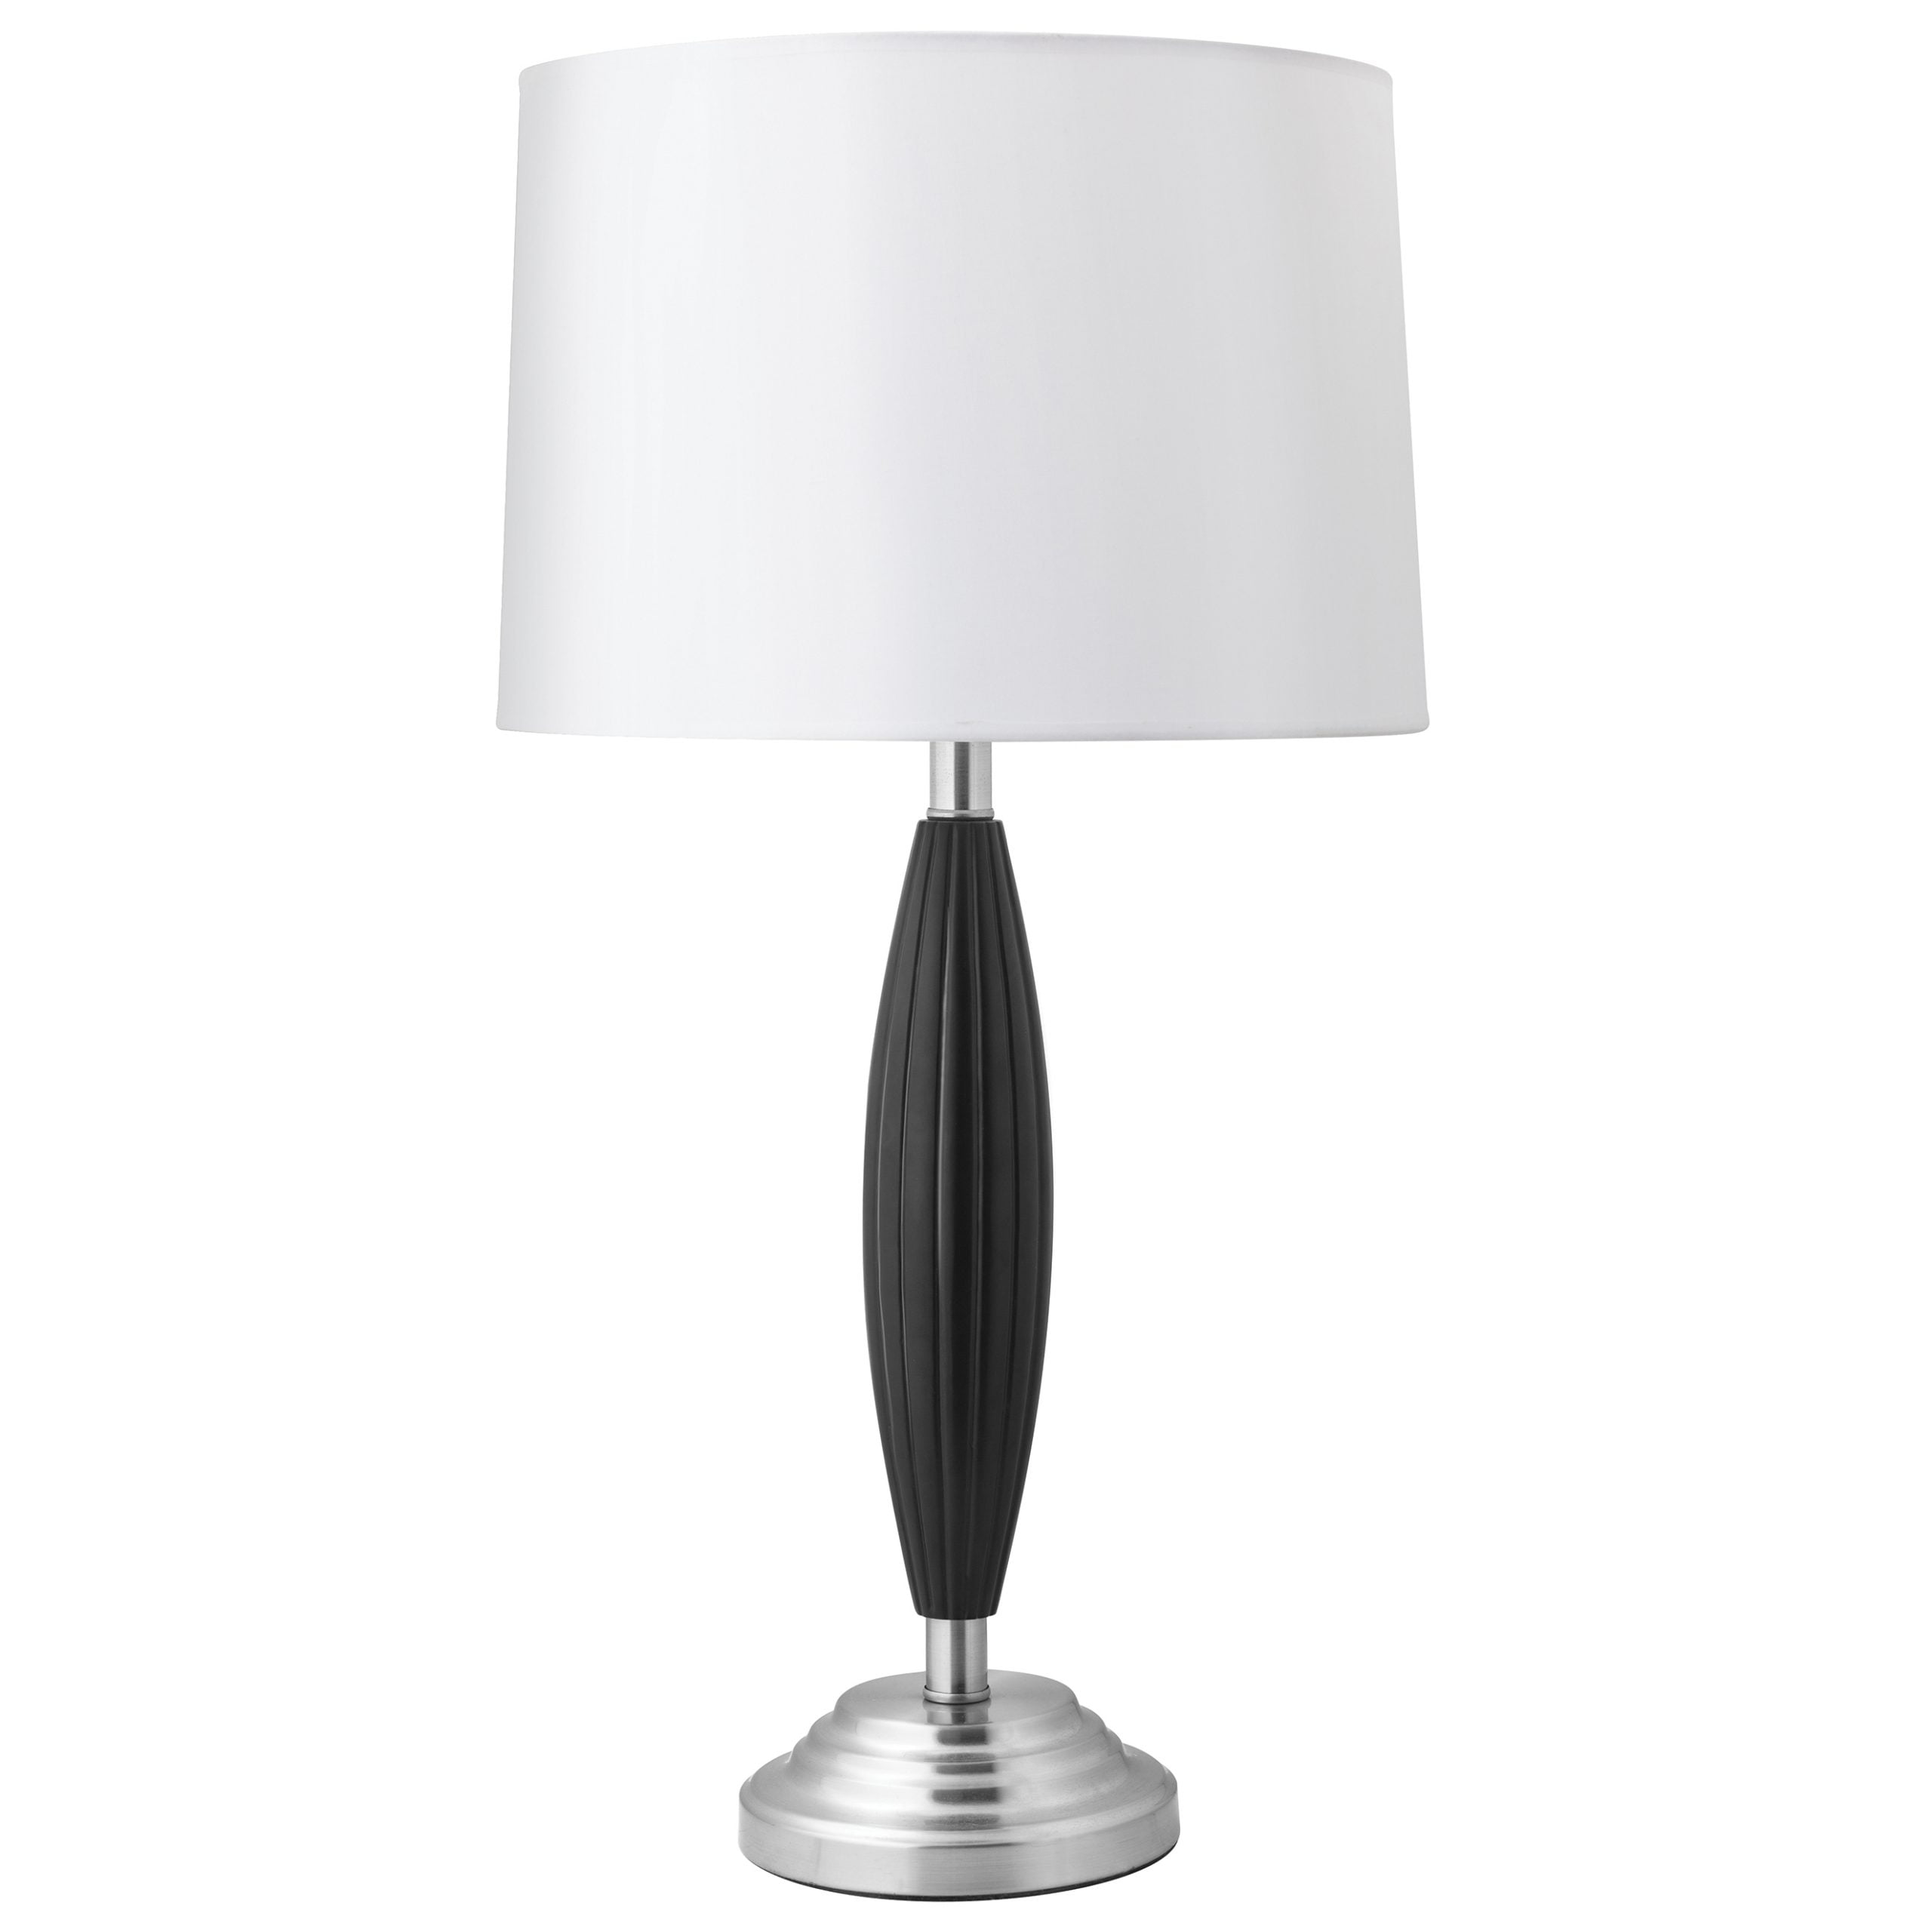 Custer Table Lamp